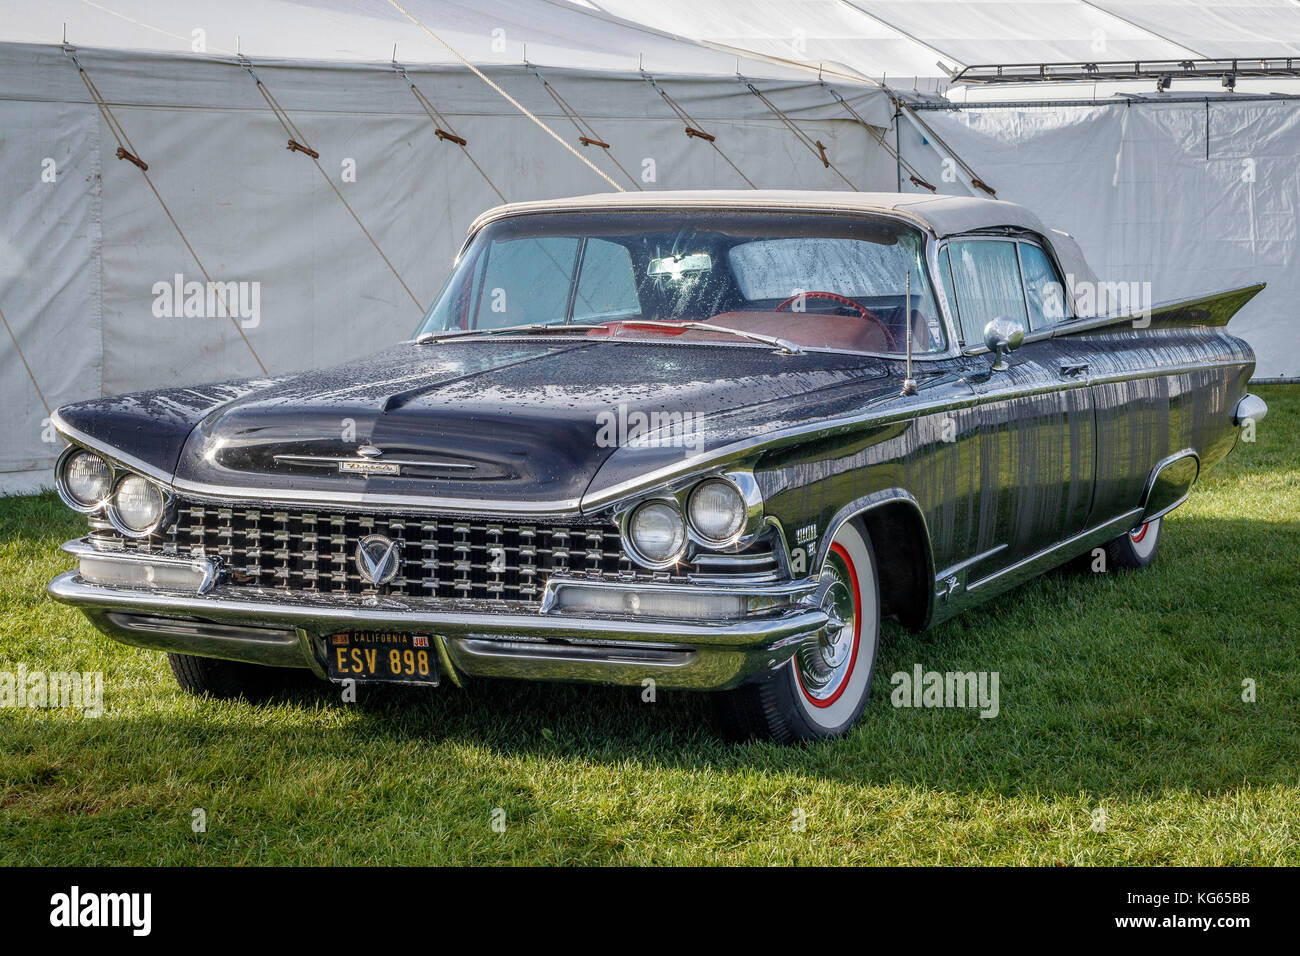 1959 Buick Electra 225 two door, soft top, on display at the 2017 Goodwood Revival, Sussex, UK. - Stock Image